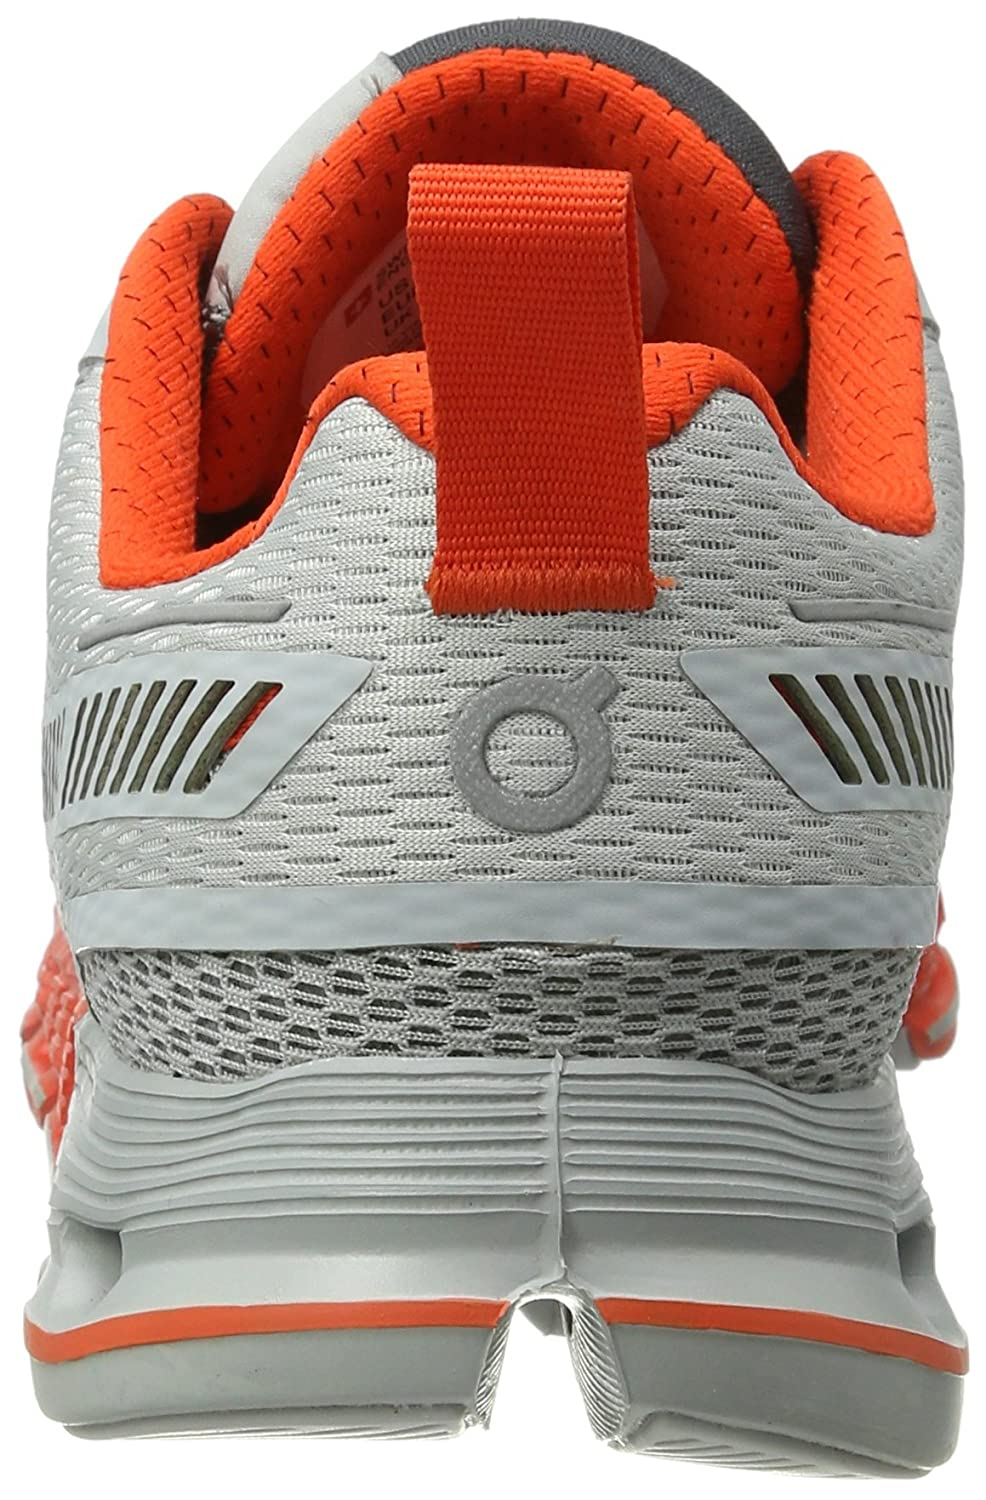 On Running Men's US Cloudflyer Sneaker Iron/Sky B01HNYE27C 9.5 D(M) US Men's - Men's|Glacier/Spice 8fc020